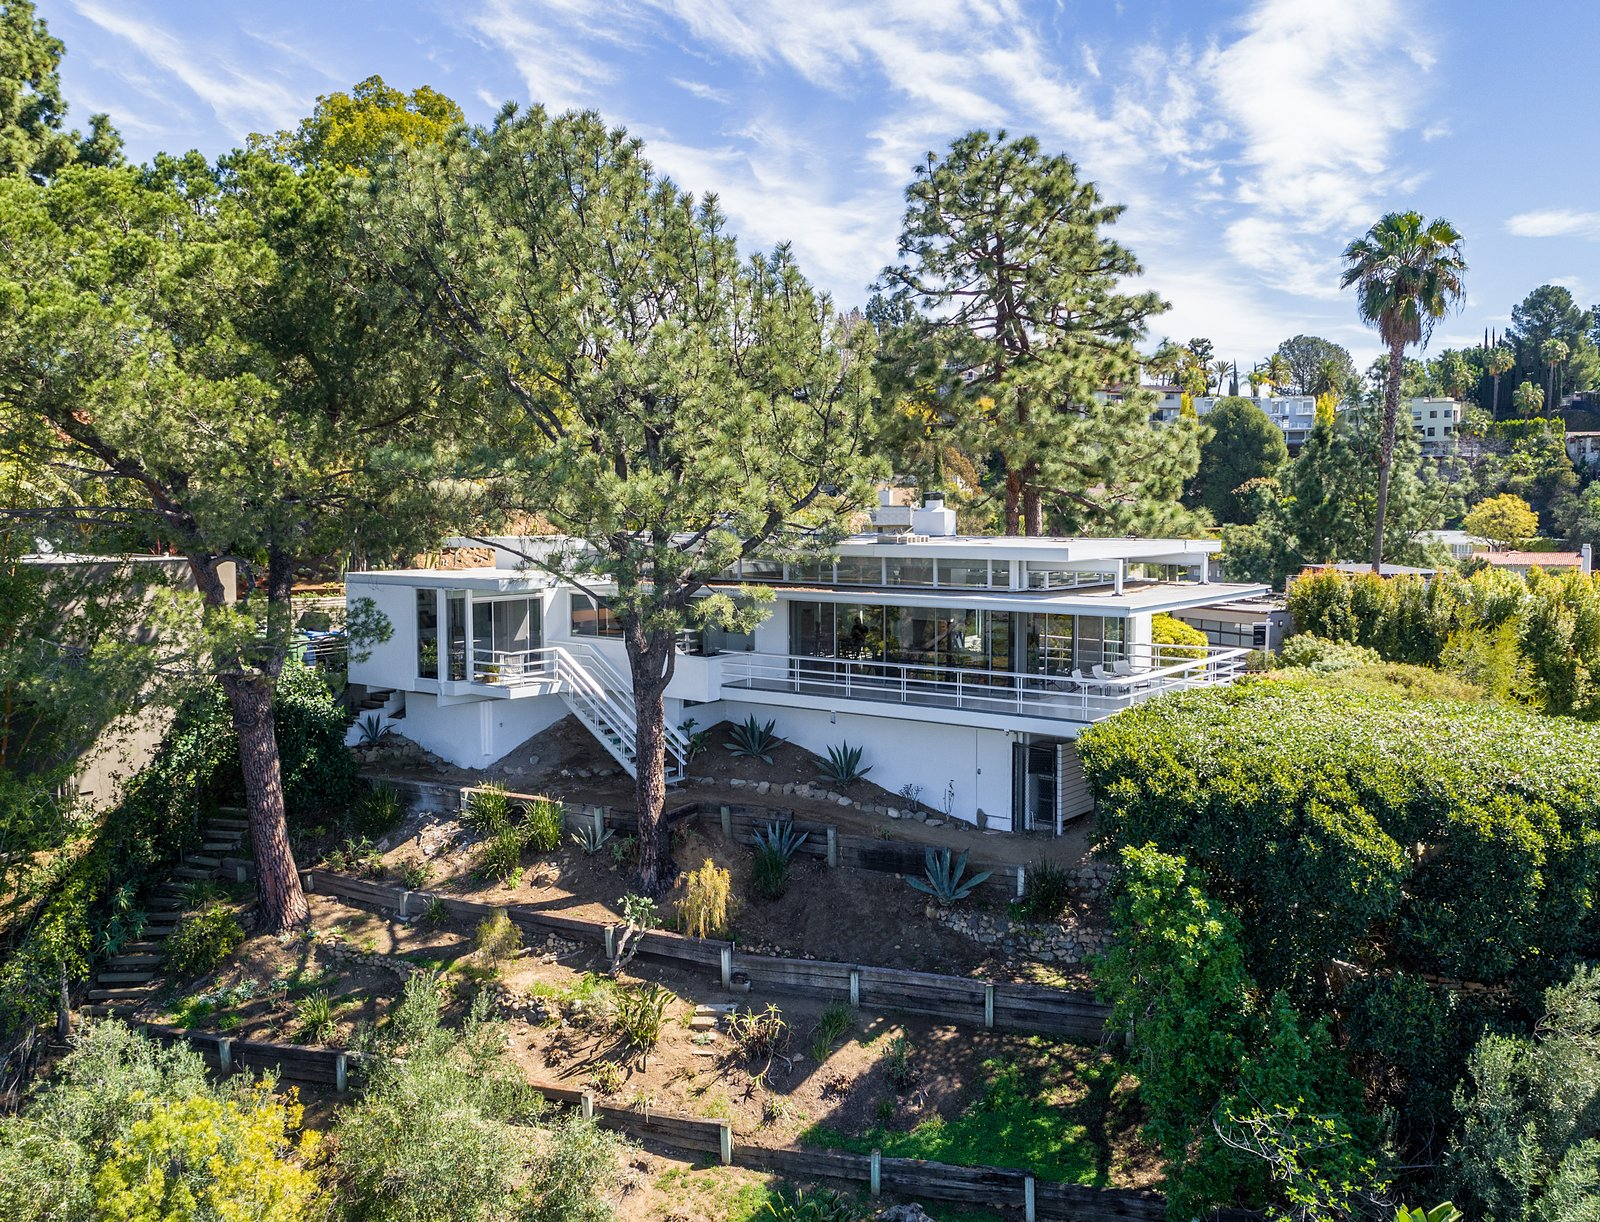 In addition to an expansive hillside garden the home also offers off-street parking for five cars.